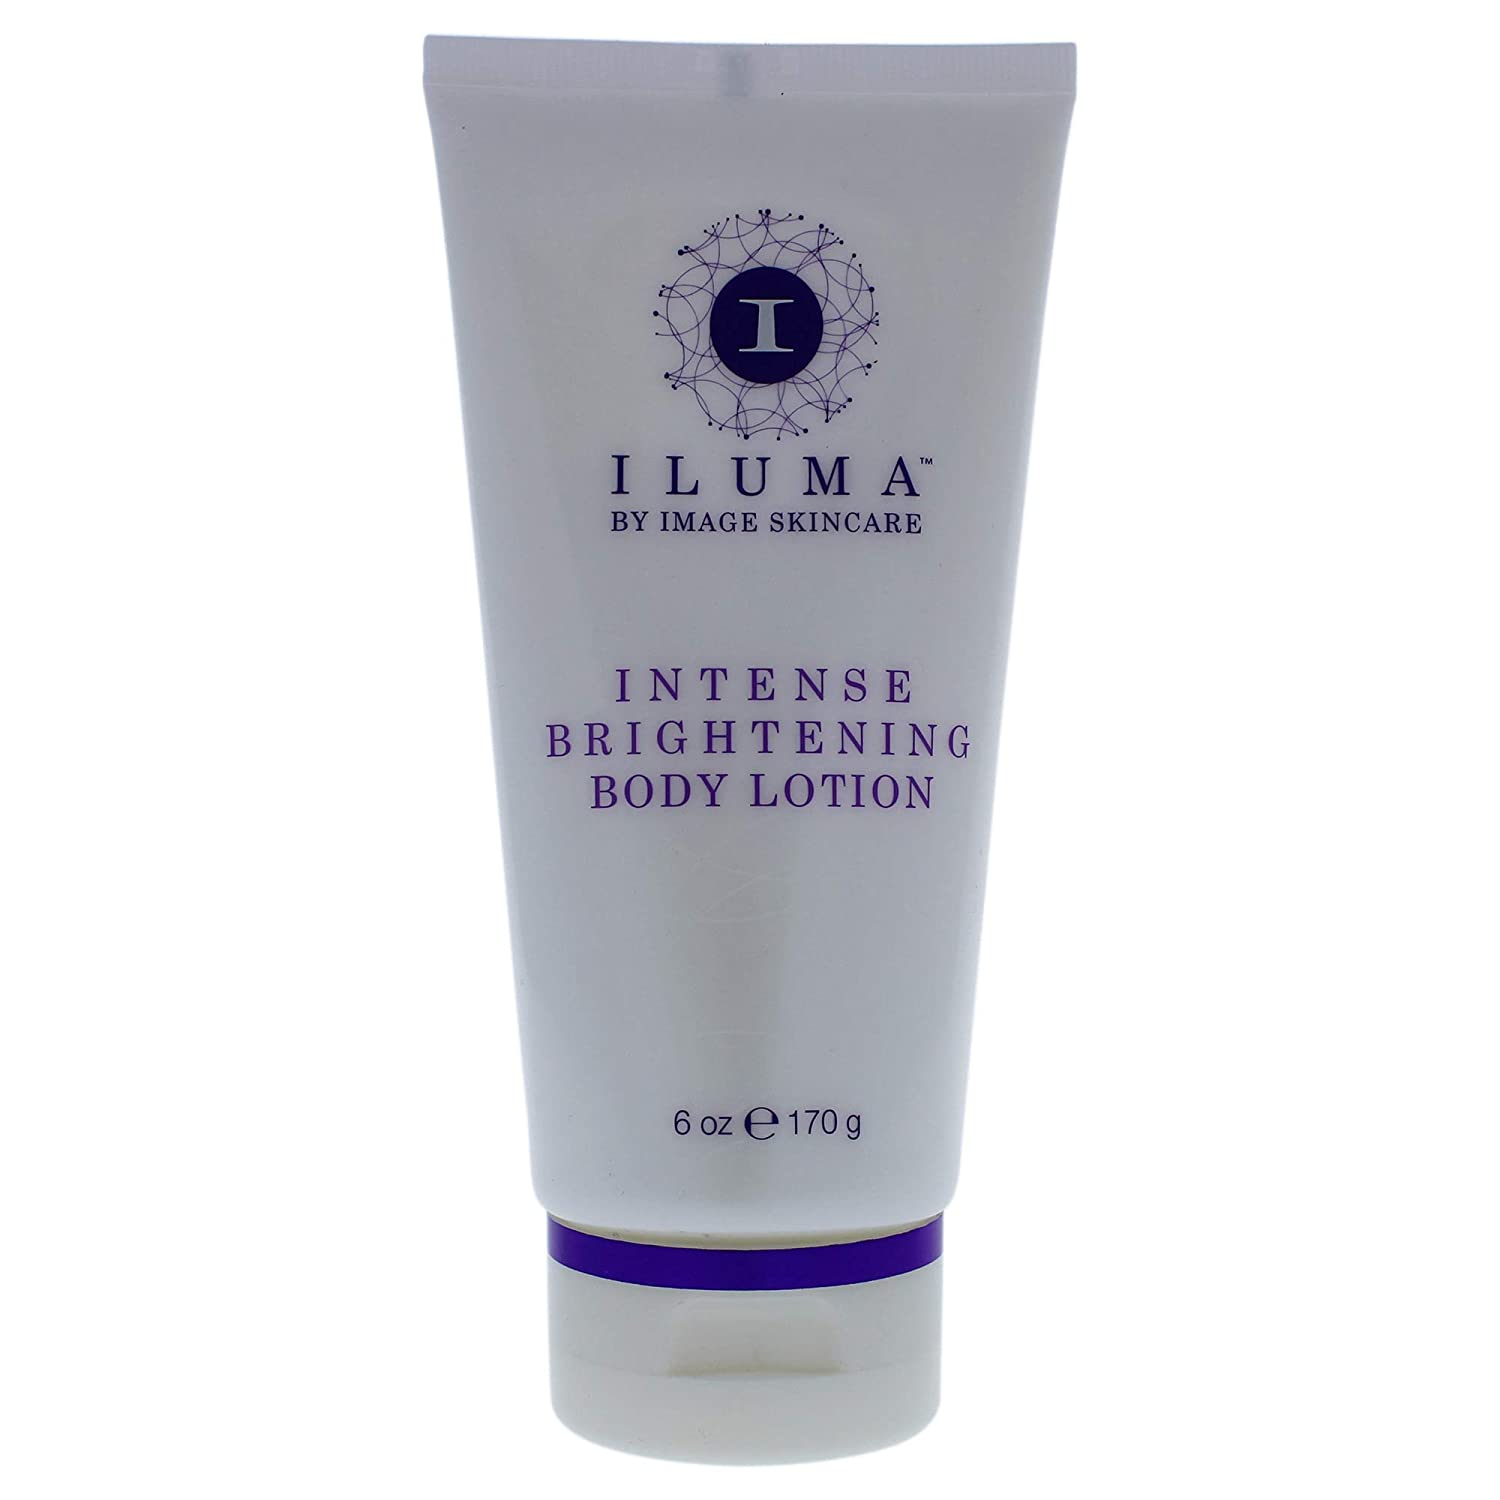 IMAGE Skincare Iluma Intense Lightening Body Lotion with VT, 6 Oz